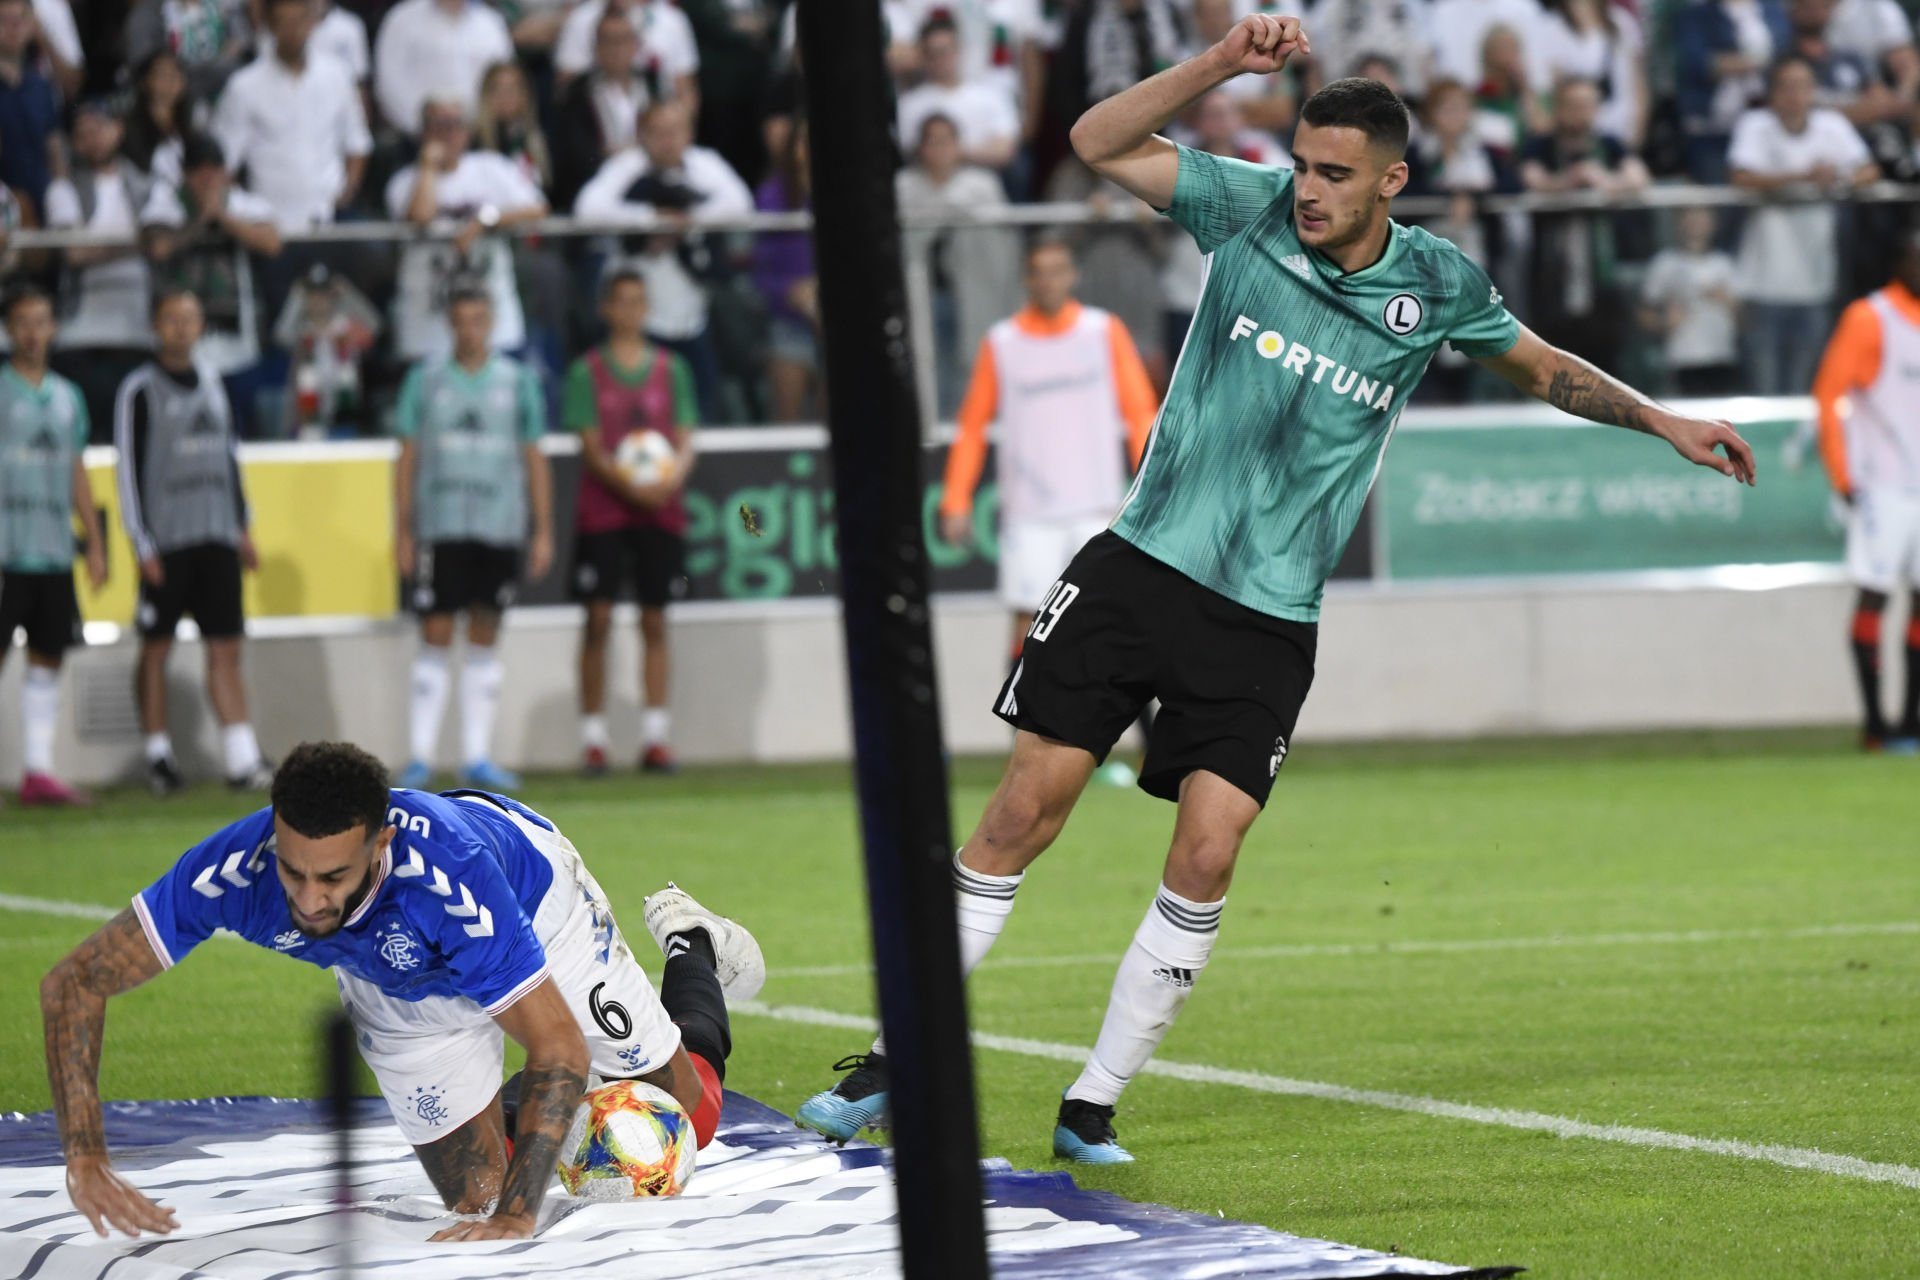 WARSZAWA 22.08.2019 PIERWSZY MECZ IV RUNDA ELIMINACYJNA LIGA EUROPY SEZON 2019/20: LEGIA WARSZAWA - RANGERS FC --- UEFA EUROPA LEAGUE FIRST LEG  FOURTH QUALIFYING ROUND MATCH: LEGIA WARSAW - RANGERS FC CONNOR GOLDSON, SANDRO KULENOVIC,  FOT. MACIEJ BIALY/ 400mm.pl